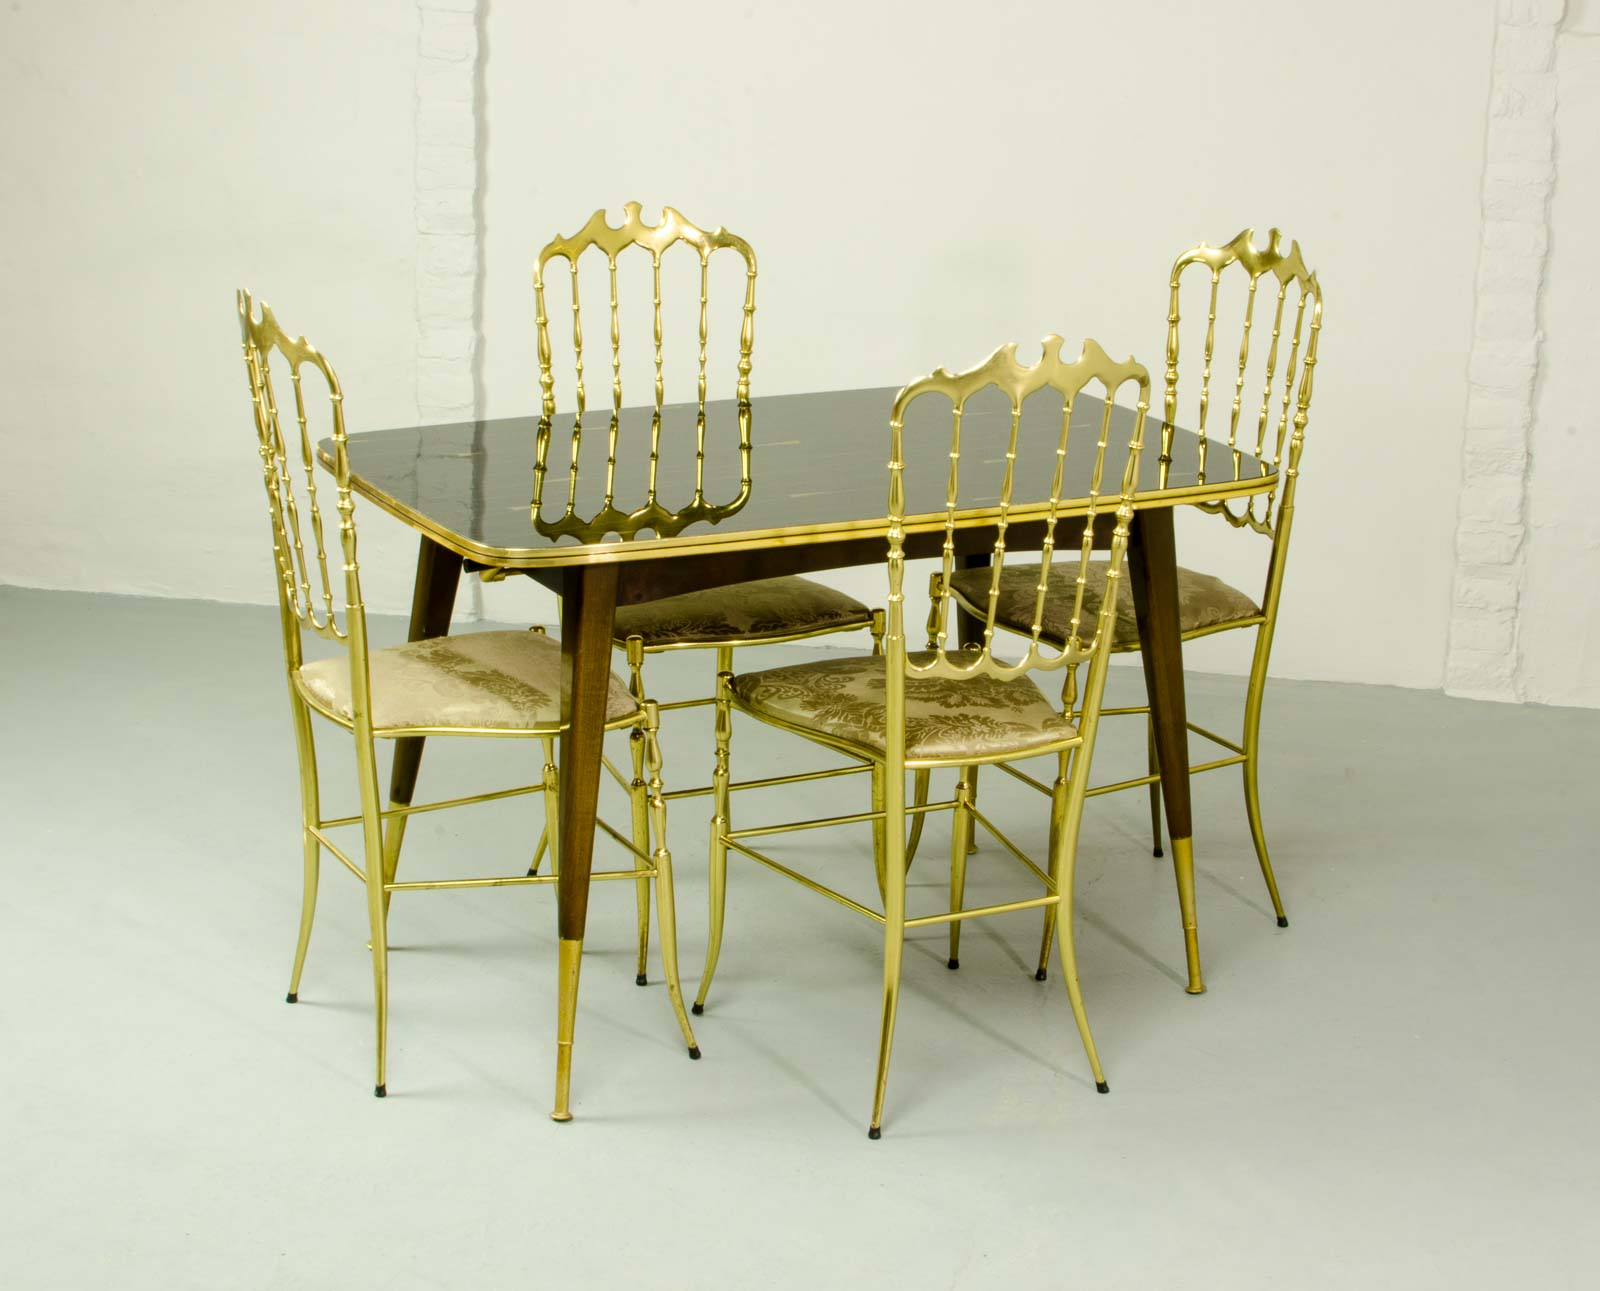 Midcentury Italian Dining Set of 4 Brass Chiavari Chairs and